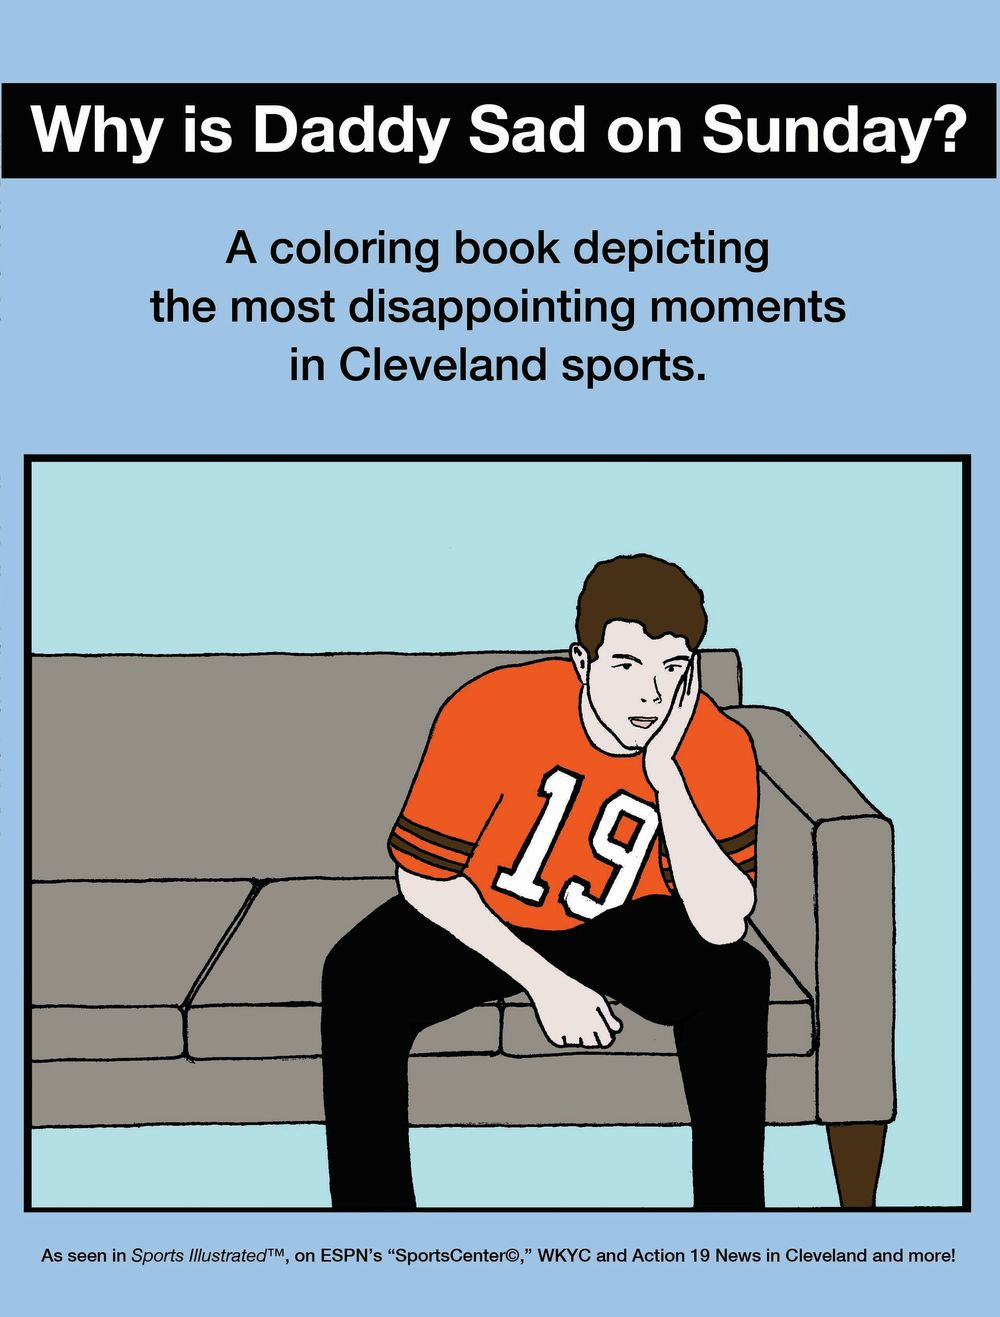 why is daddy sad on sunday disappointing moments in cleveland sports coloring book why is daddy sad on sunday - Cleveland Sports Coloring Book